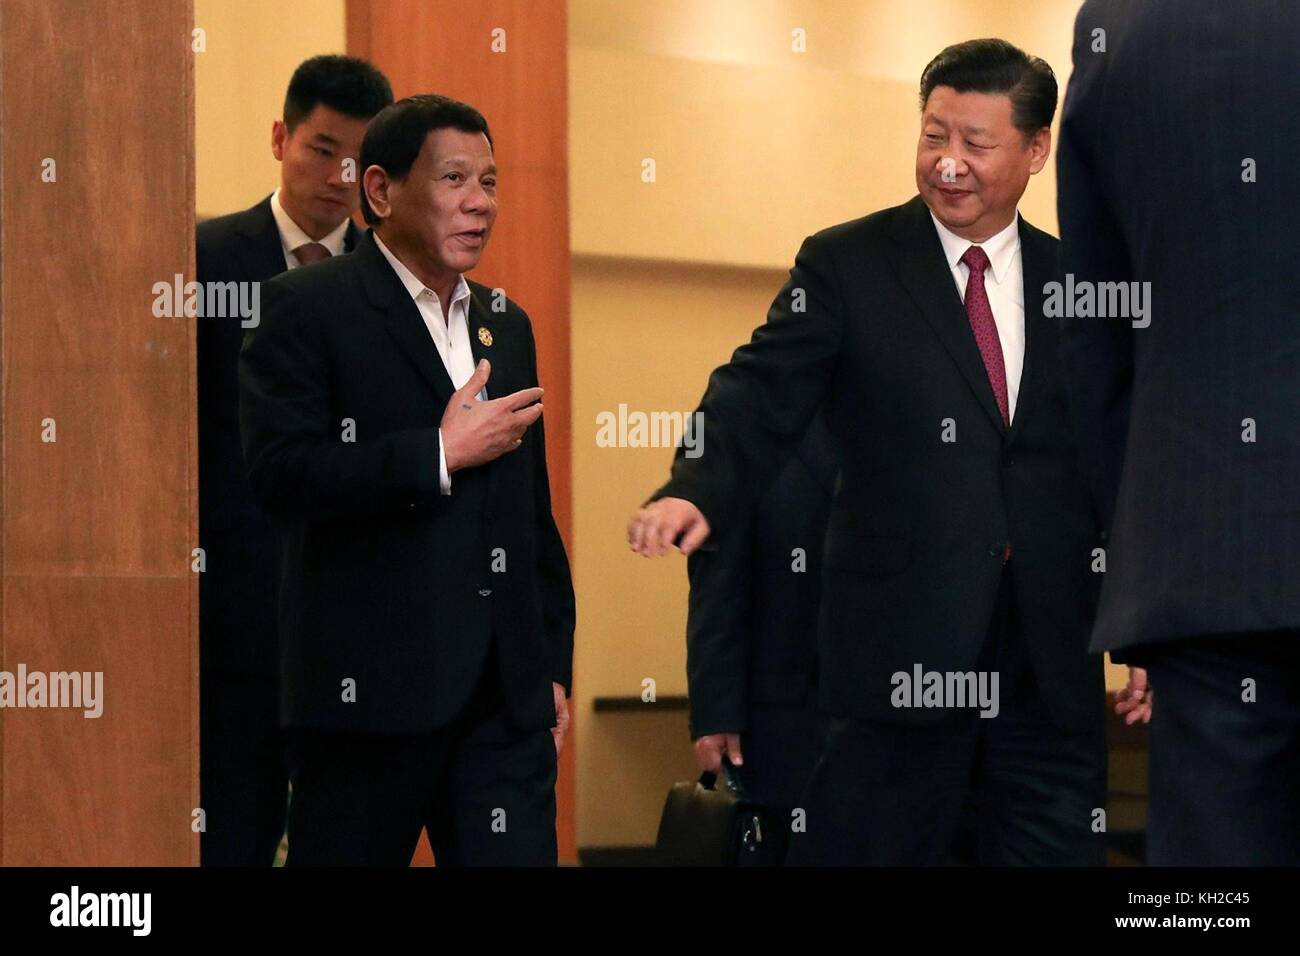 Philippines President Rodrigo Duterte, left, is escorted by Chinese President Xi Jinping prior to their bilateral - Stock Image